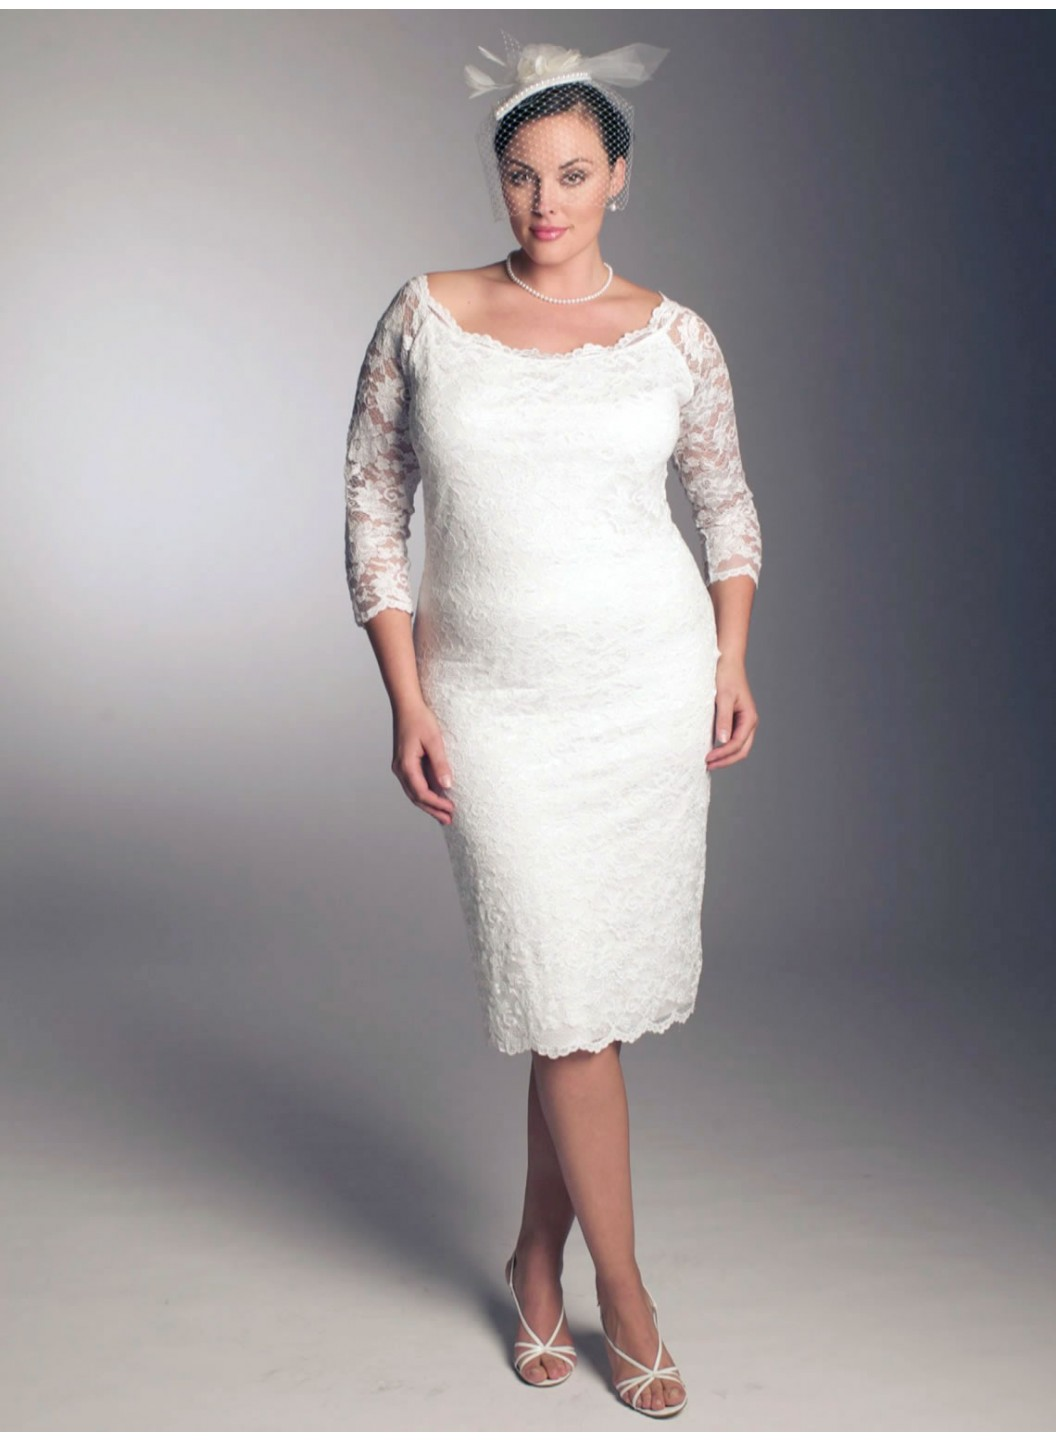 Wedding Dresses Plus Size Lace - Wedding Dresses In Jax